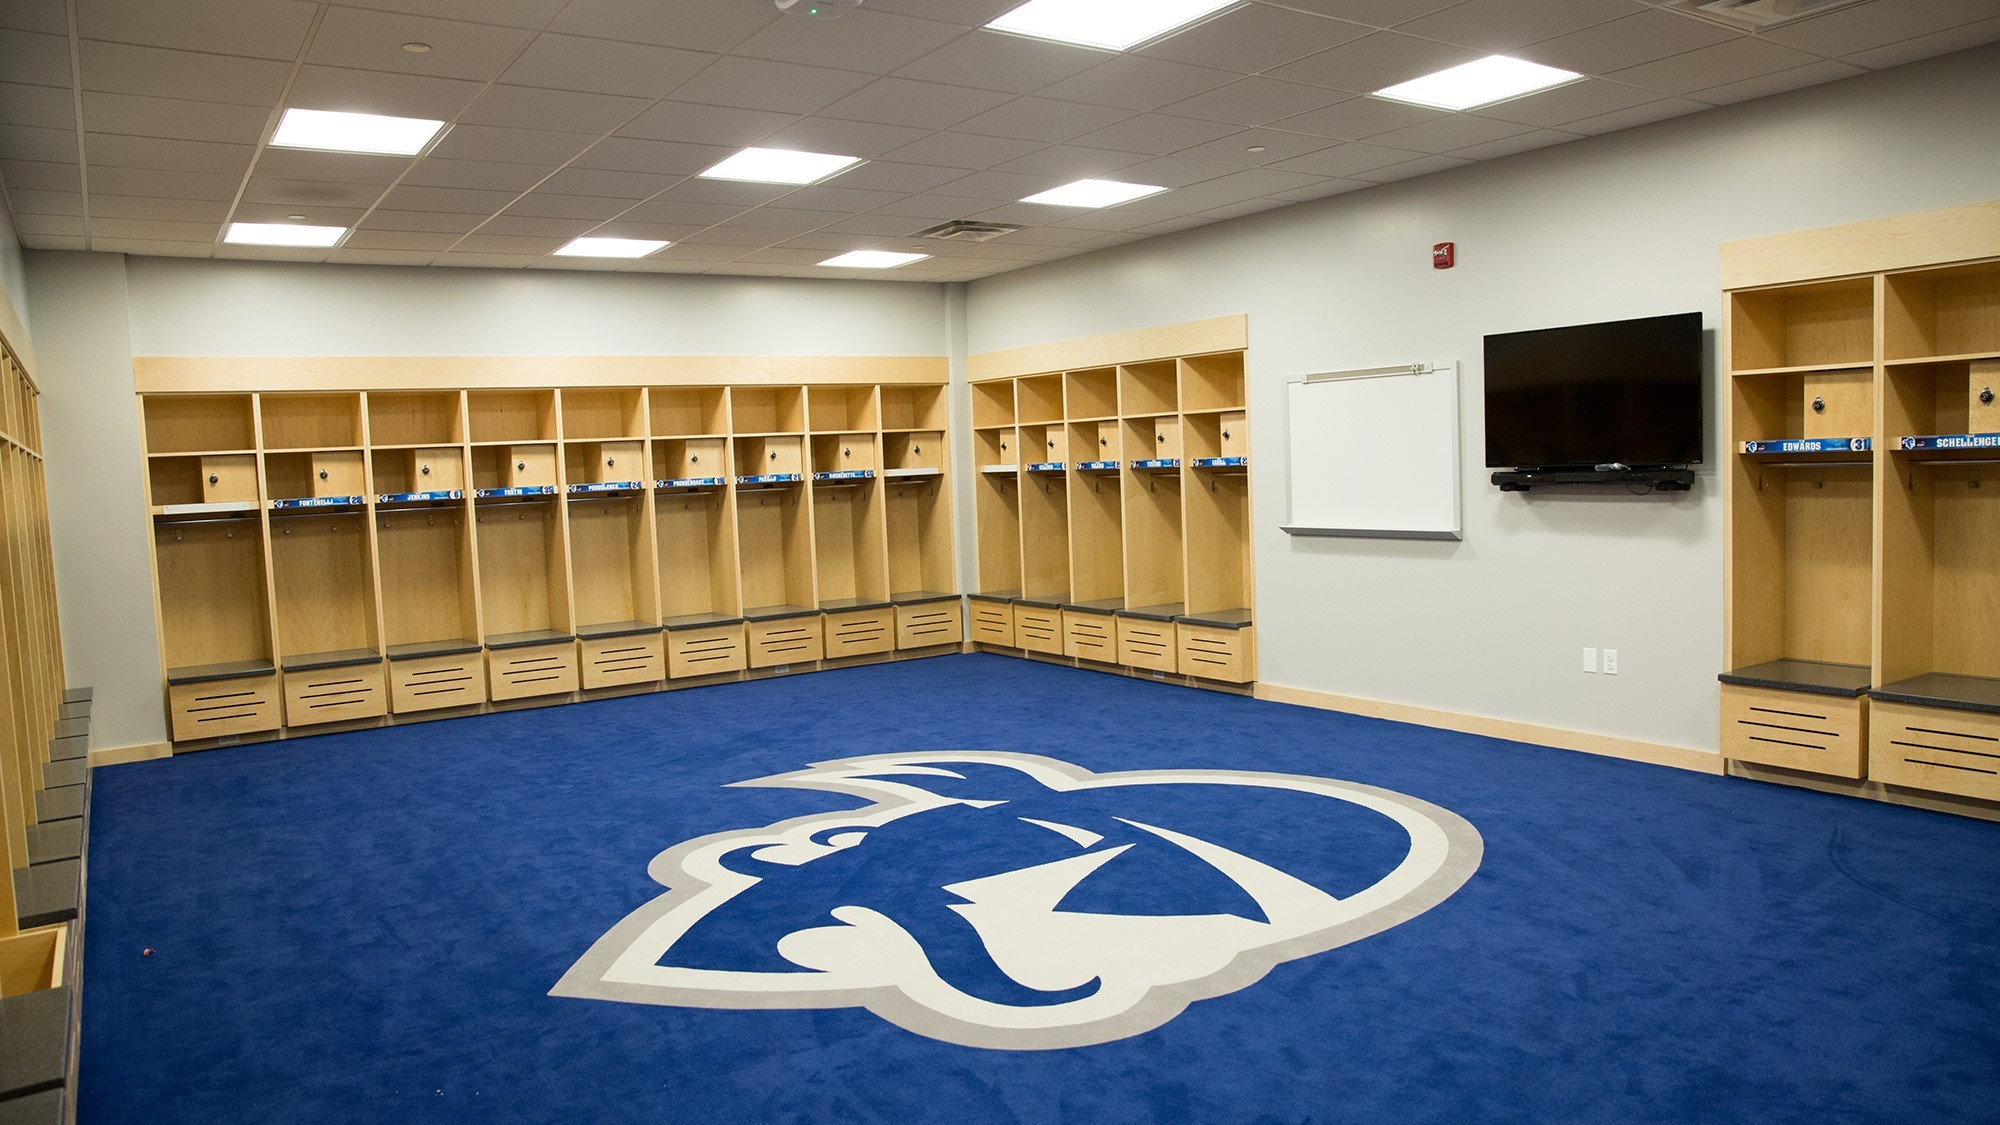 Locker Room Project Completed And Unveiled To Student Athletes